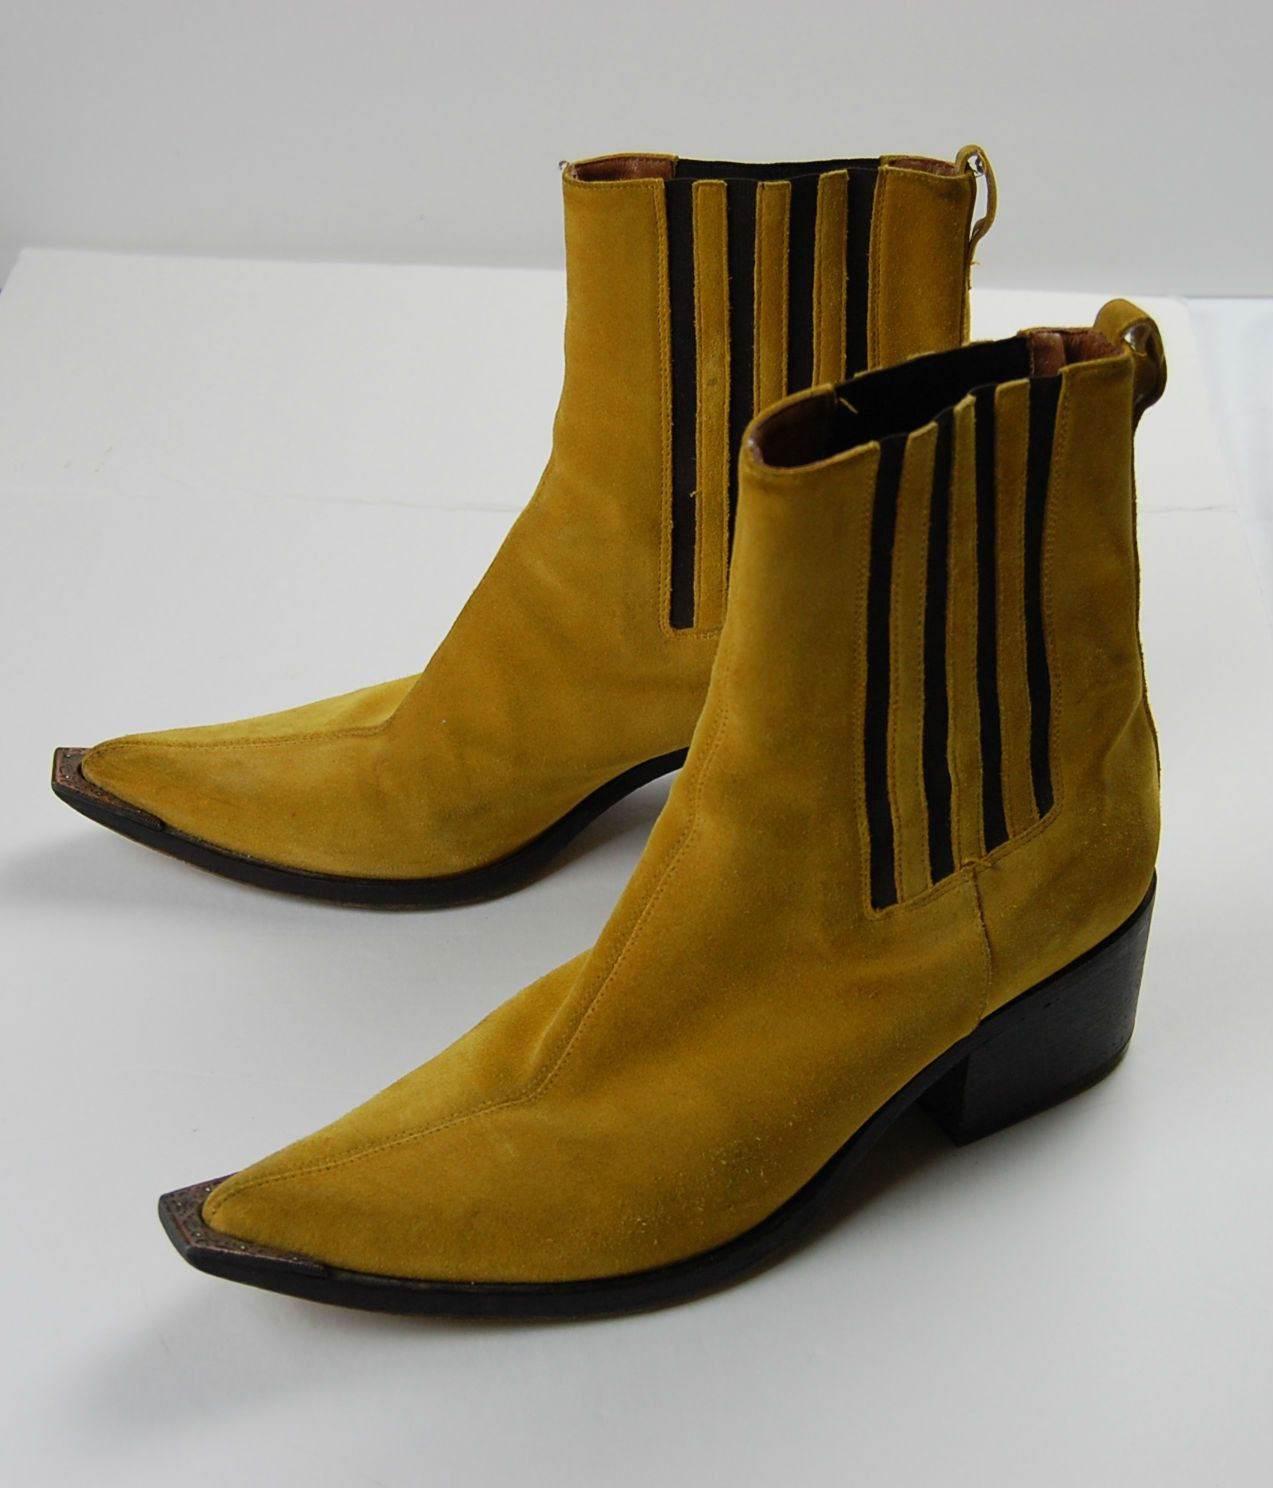 d25b55fdf Vintage Mustard Yellow Suede Ankle Boots 8.5 Medium by HoneyVelvetVintage  on Etsy